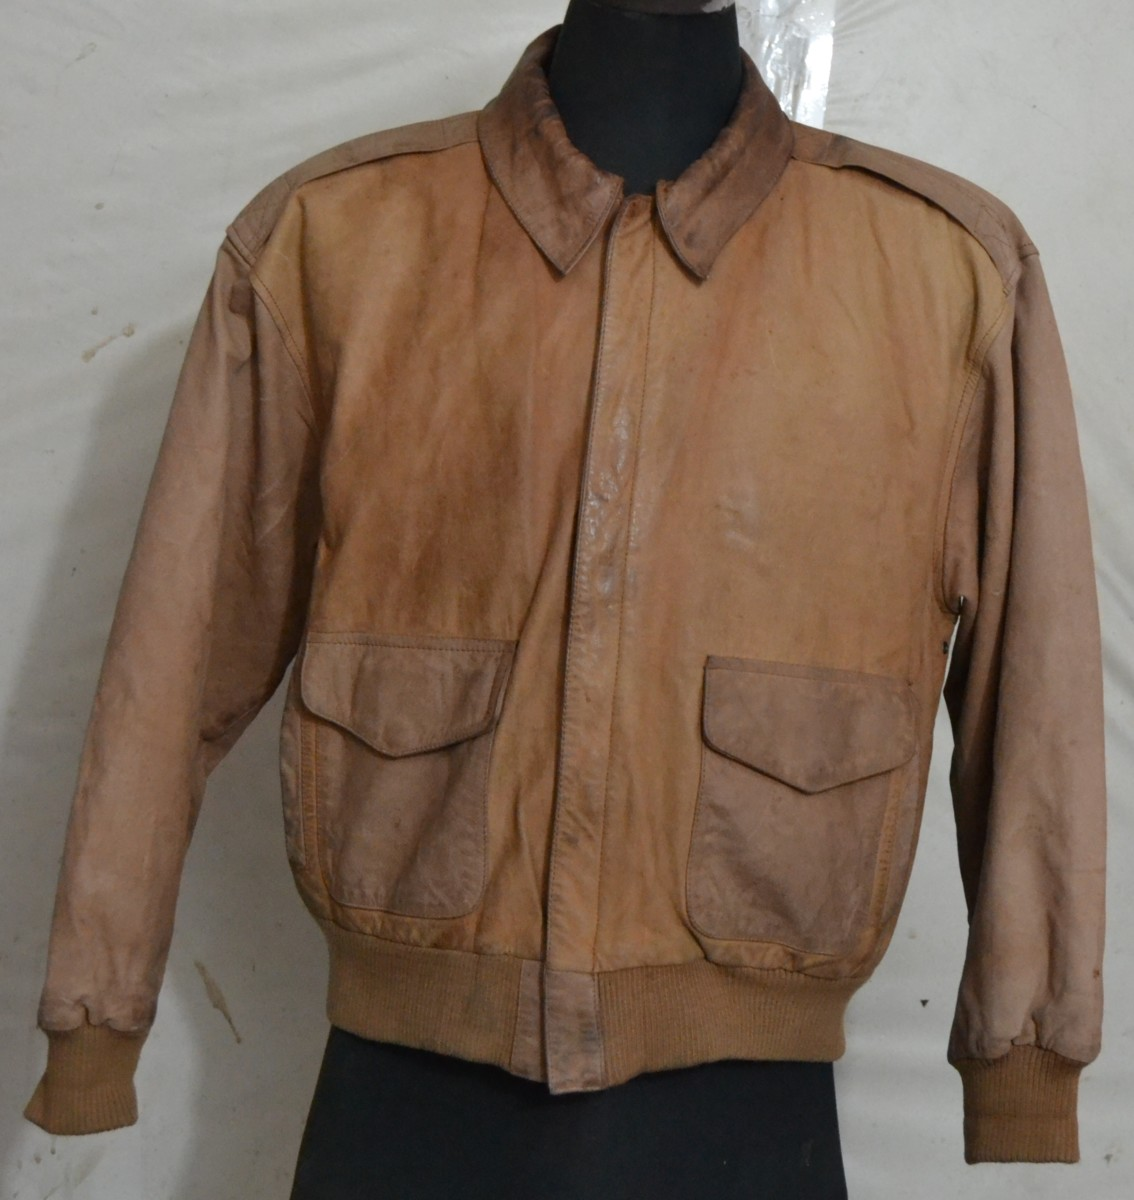 OUTBROOK Men's Type A2 Flight Leather Jacket with a nice printed